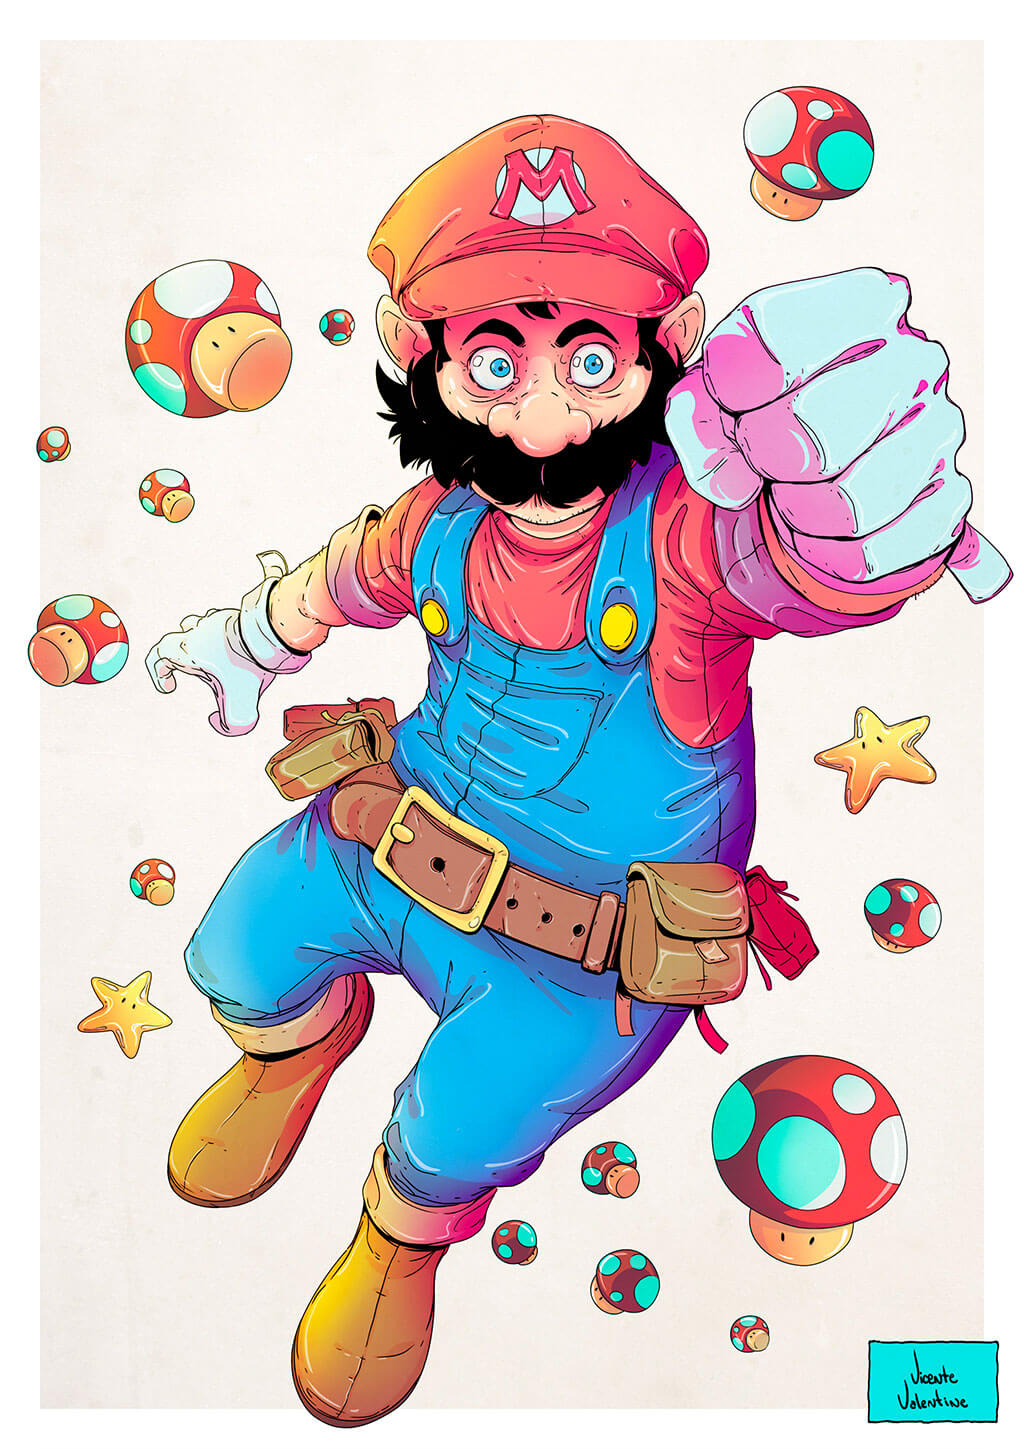 Mario Fan Art by Vicente Valentine